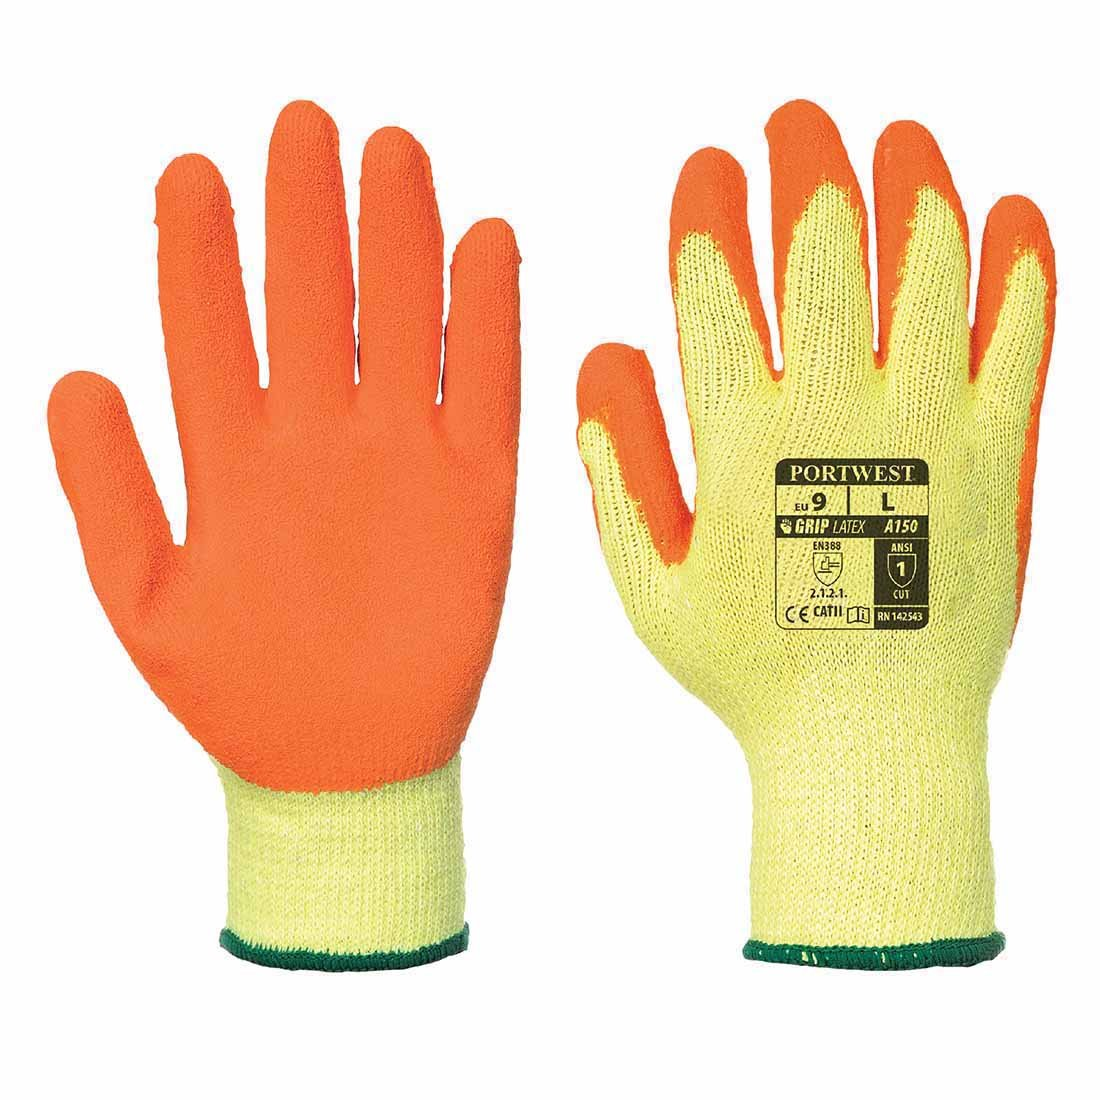 (12 PAIRS) PORTWEST A150 Latex Palm General handling Work Gloves SIZE LARGE